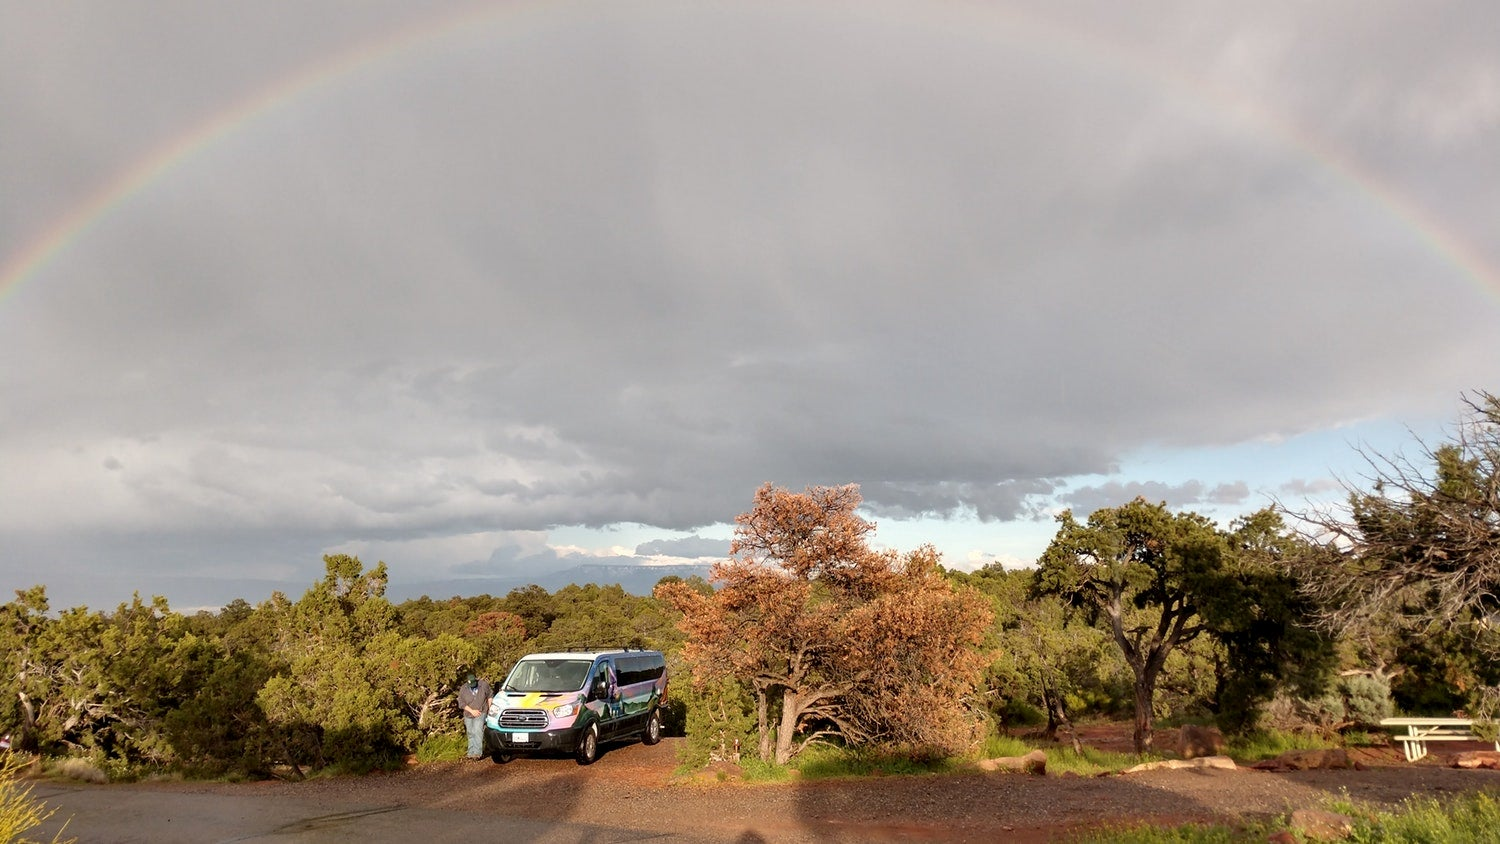 Van parked in sunny campsite with rainbow arch above it.